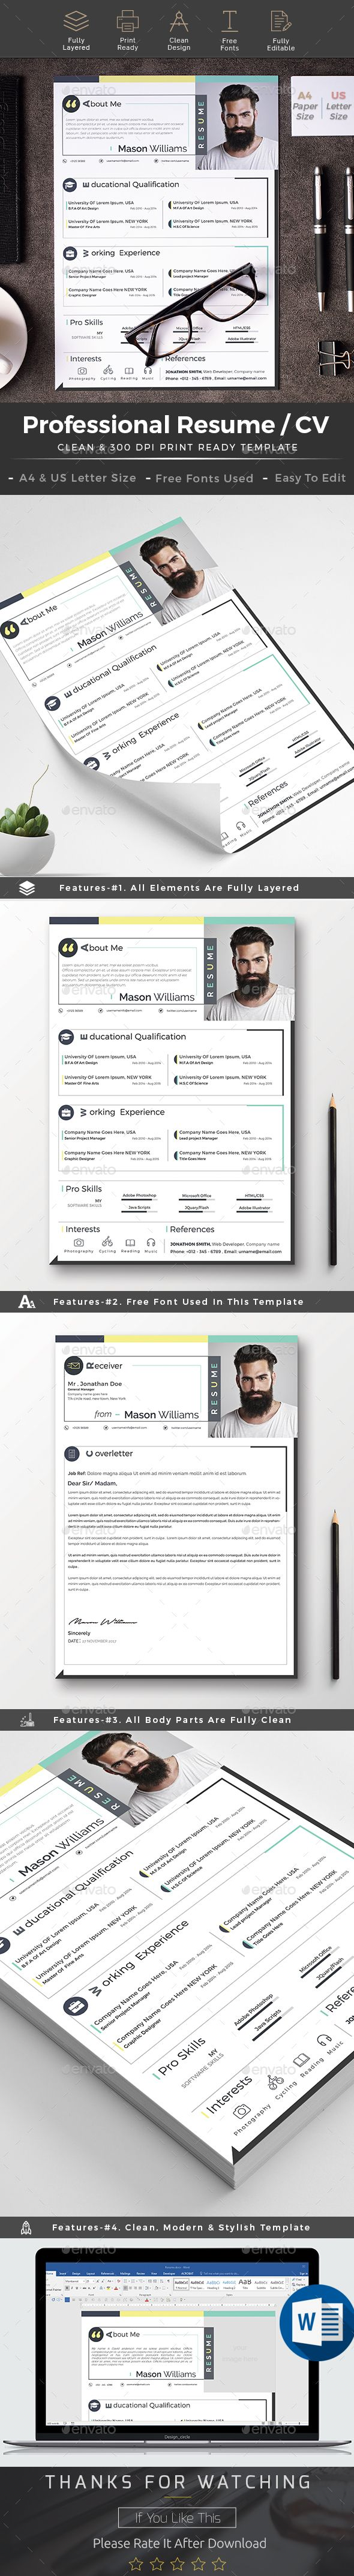 Cute 10 Steps To Creating A Resume Thick 100 Best Resume Words Shaped 12 Column Grid Template 13th Birthday Invitation Templates Old 2003 Excel Templates White2015 February Calendar Template 25  Best Ideas About Executive Resume Template On Pinterest ..